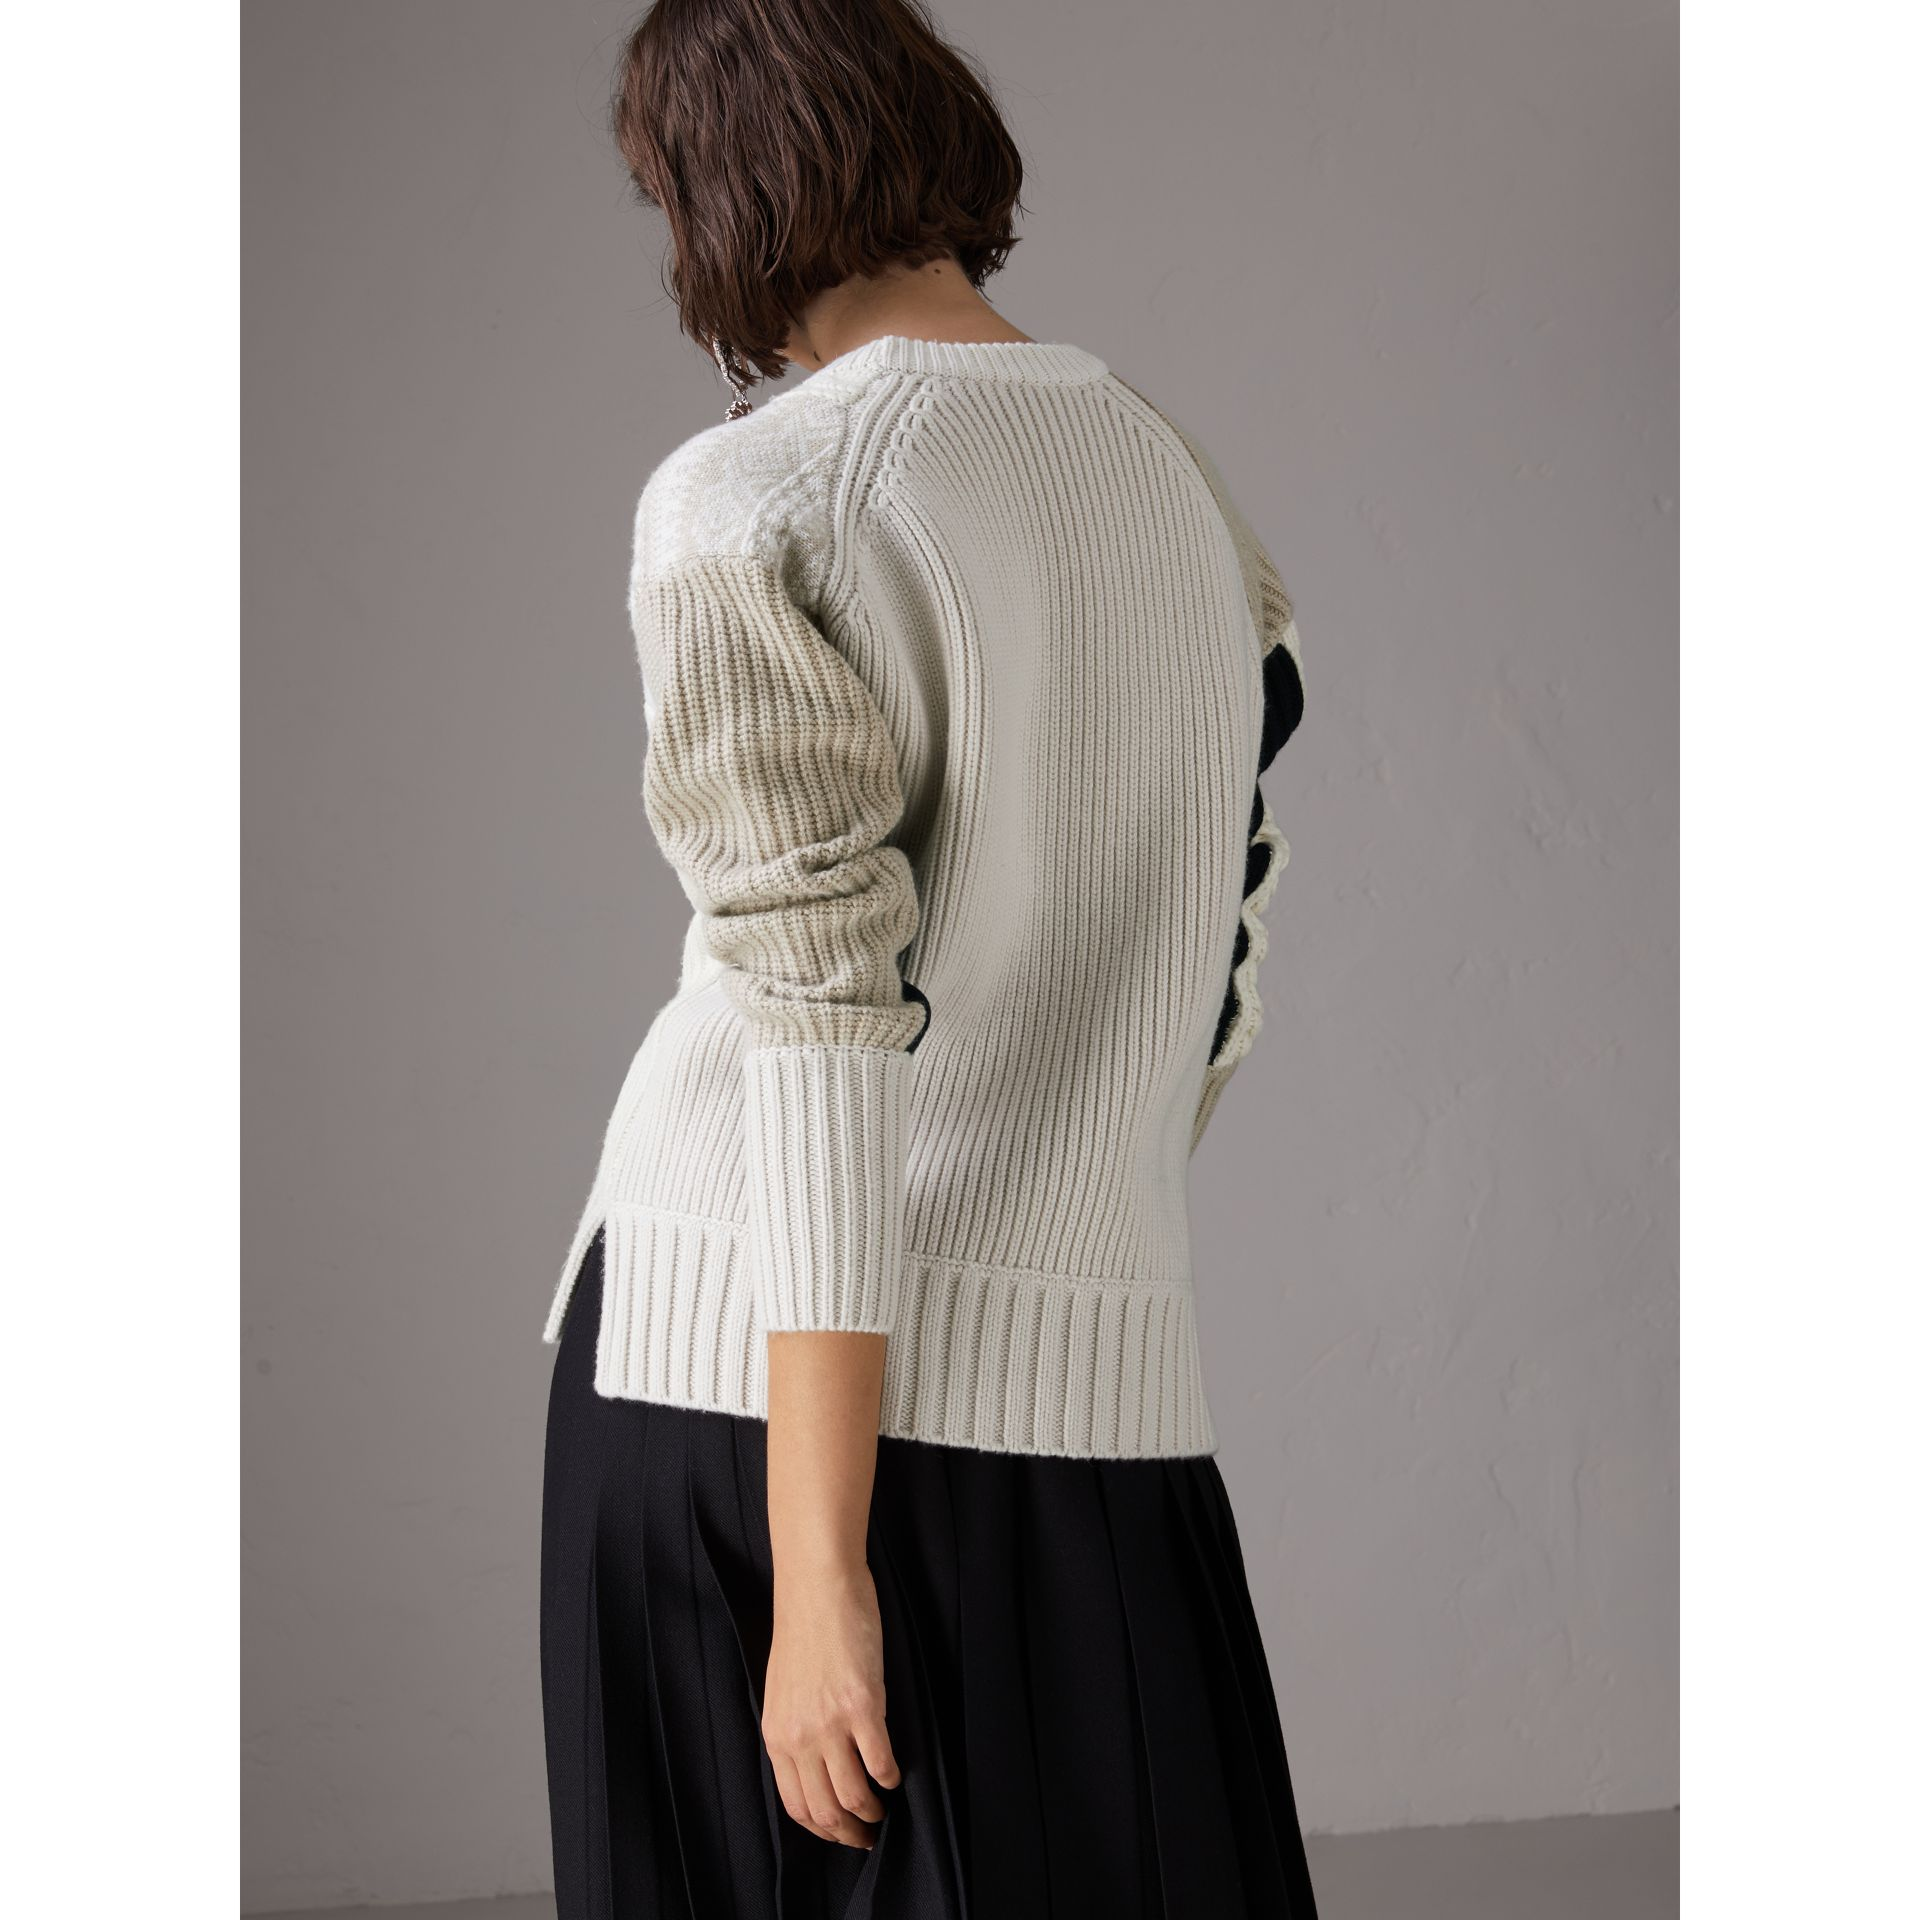 Colour Block Fair Isle and Cable Knit Wool Cashmere Sweater in Ivory - Women | Burberry - gallery image 2